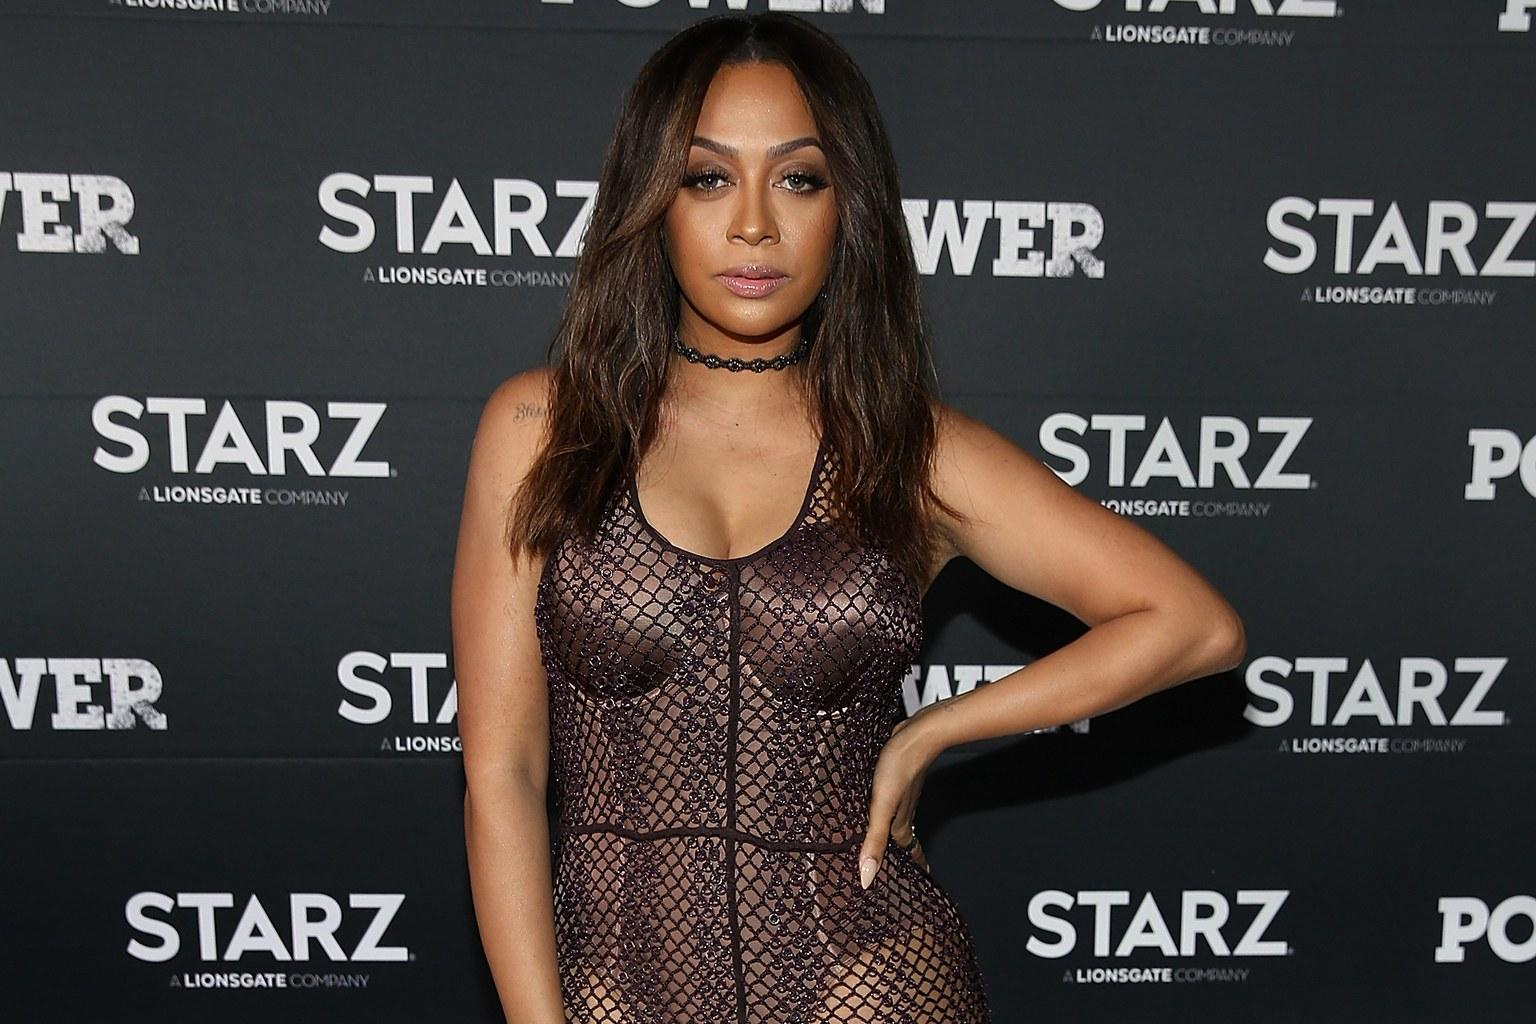 La La Anthony Looks Like A Sultry Mermaid In Plunging Sequined Jumpsuit - Check It Out!